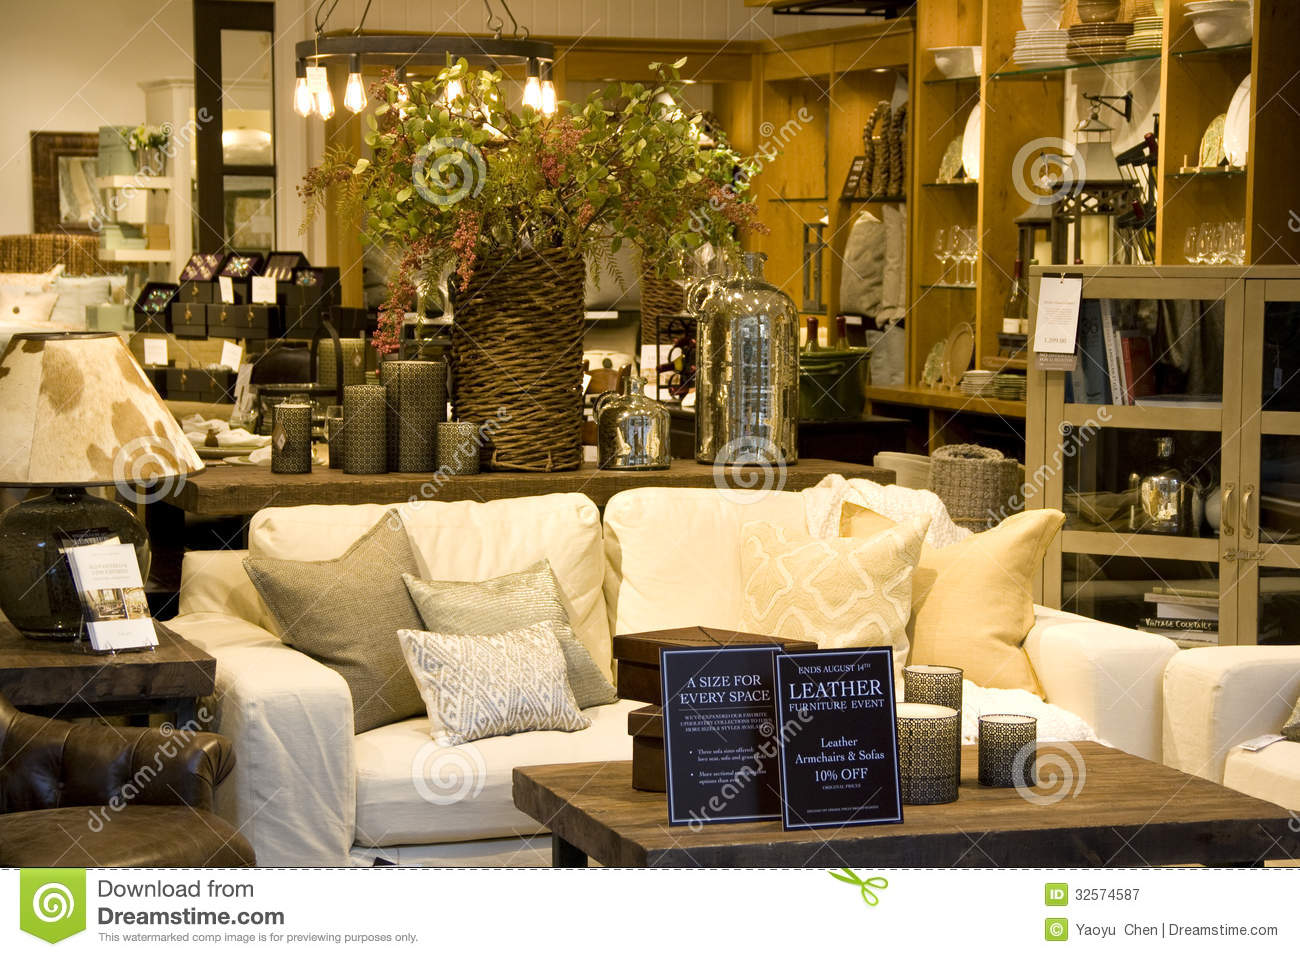 furniture home decor store royalty free stock photography - Home Decor Stores